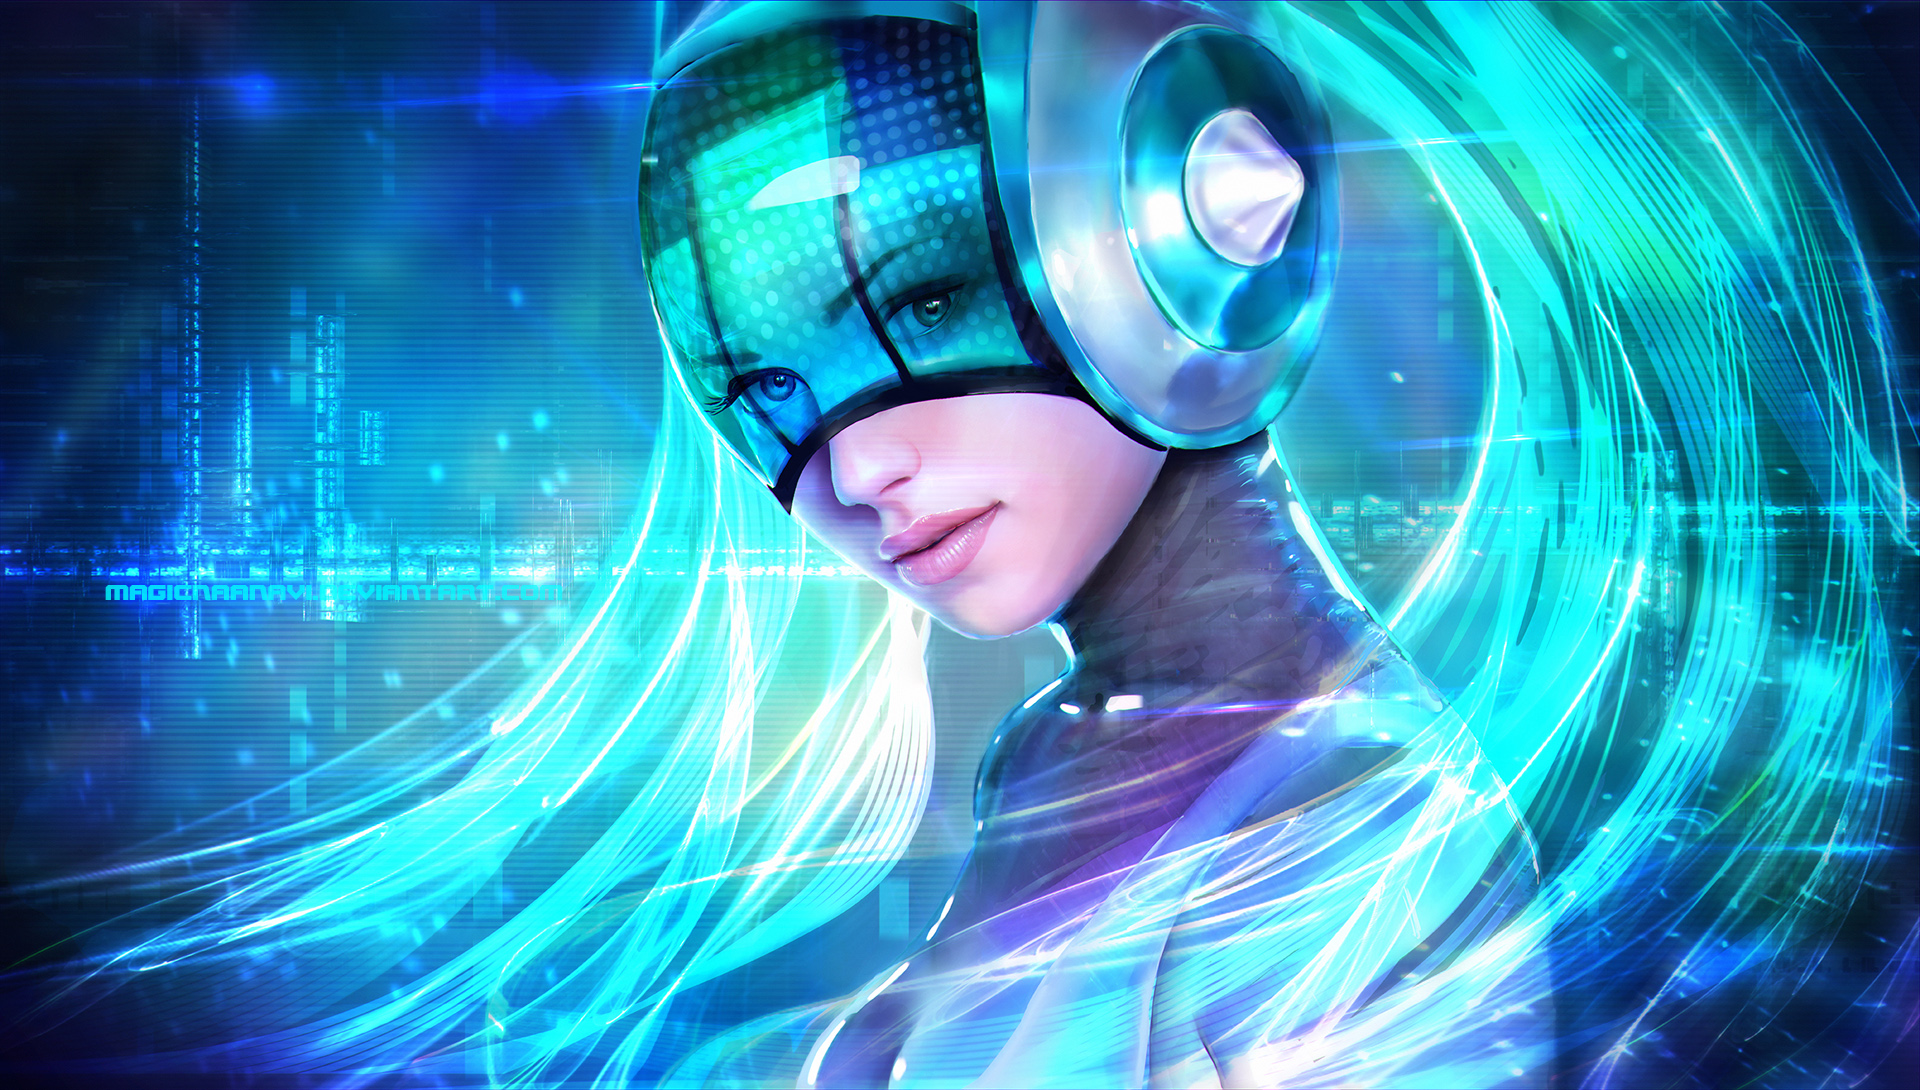 Free Download Dj Sona Kinetic Lol Wallpapers 1920x1090 For